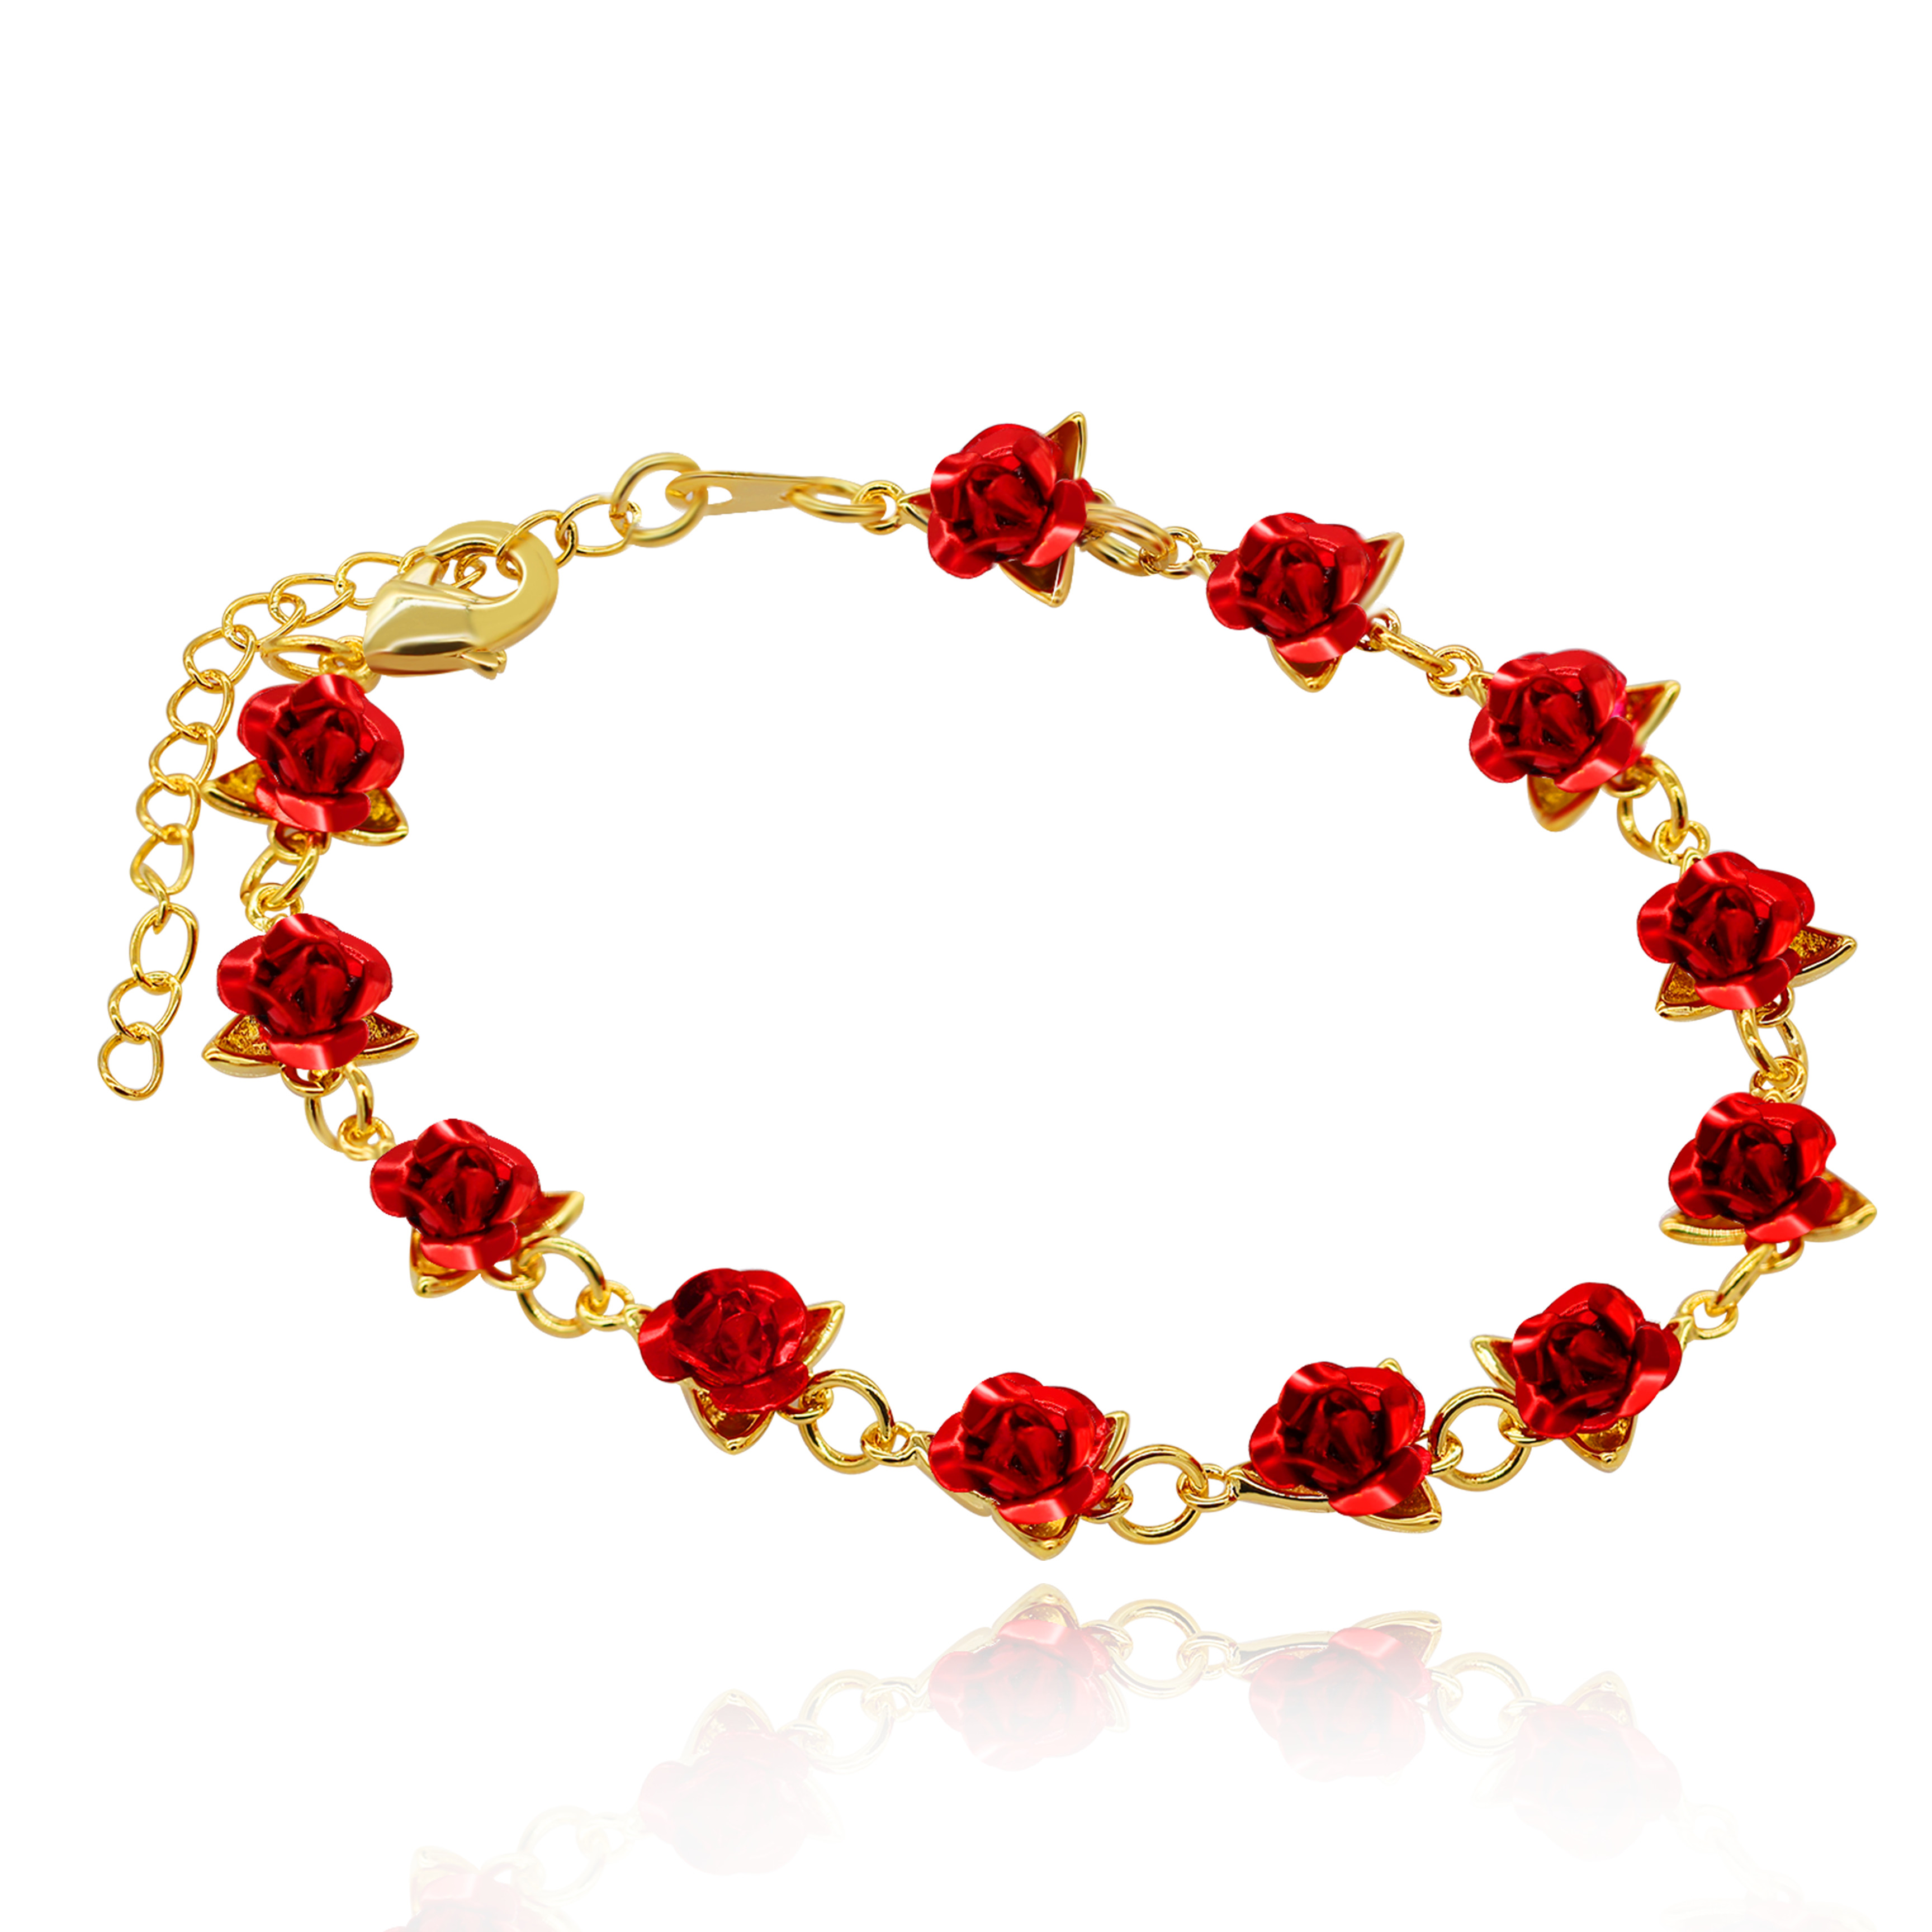 Uloveido Cute Red Rose Flower Charm Bracelet for Women Girls 18K Gold Plated Nature Jewelry, Dozen Roses Bracelets Y452 5% off